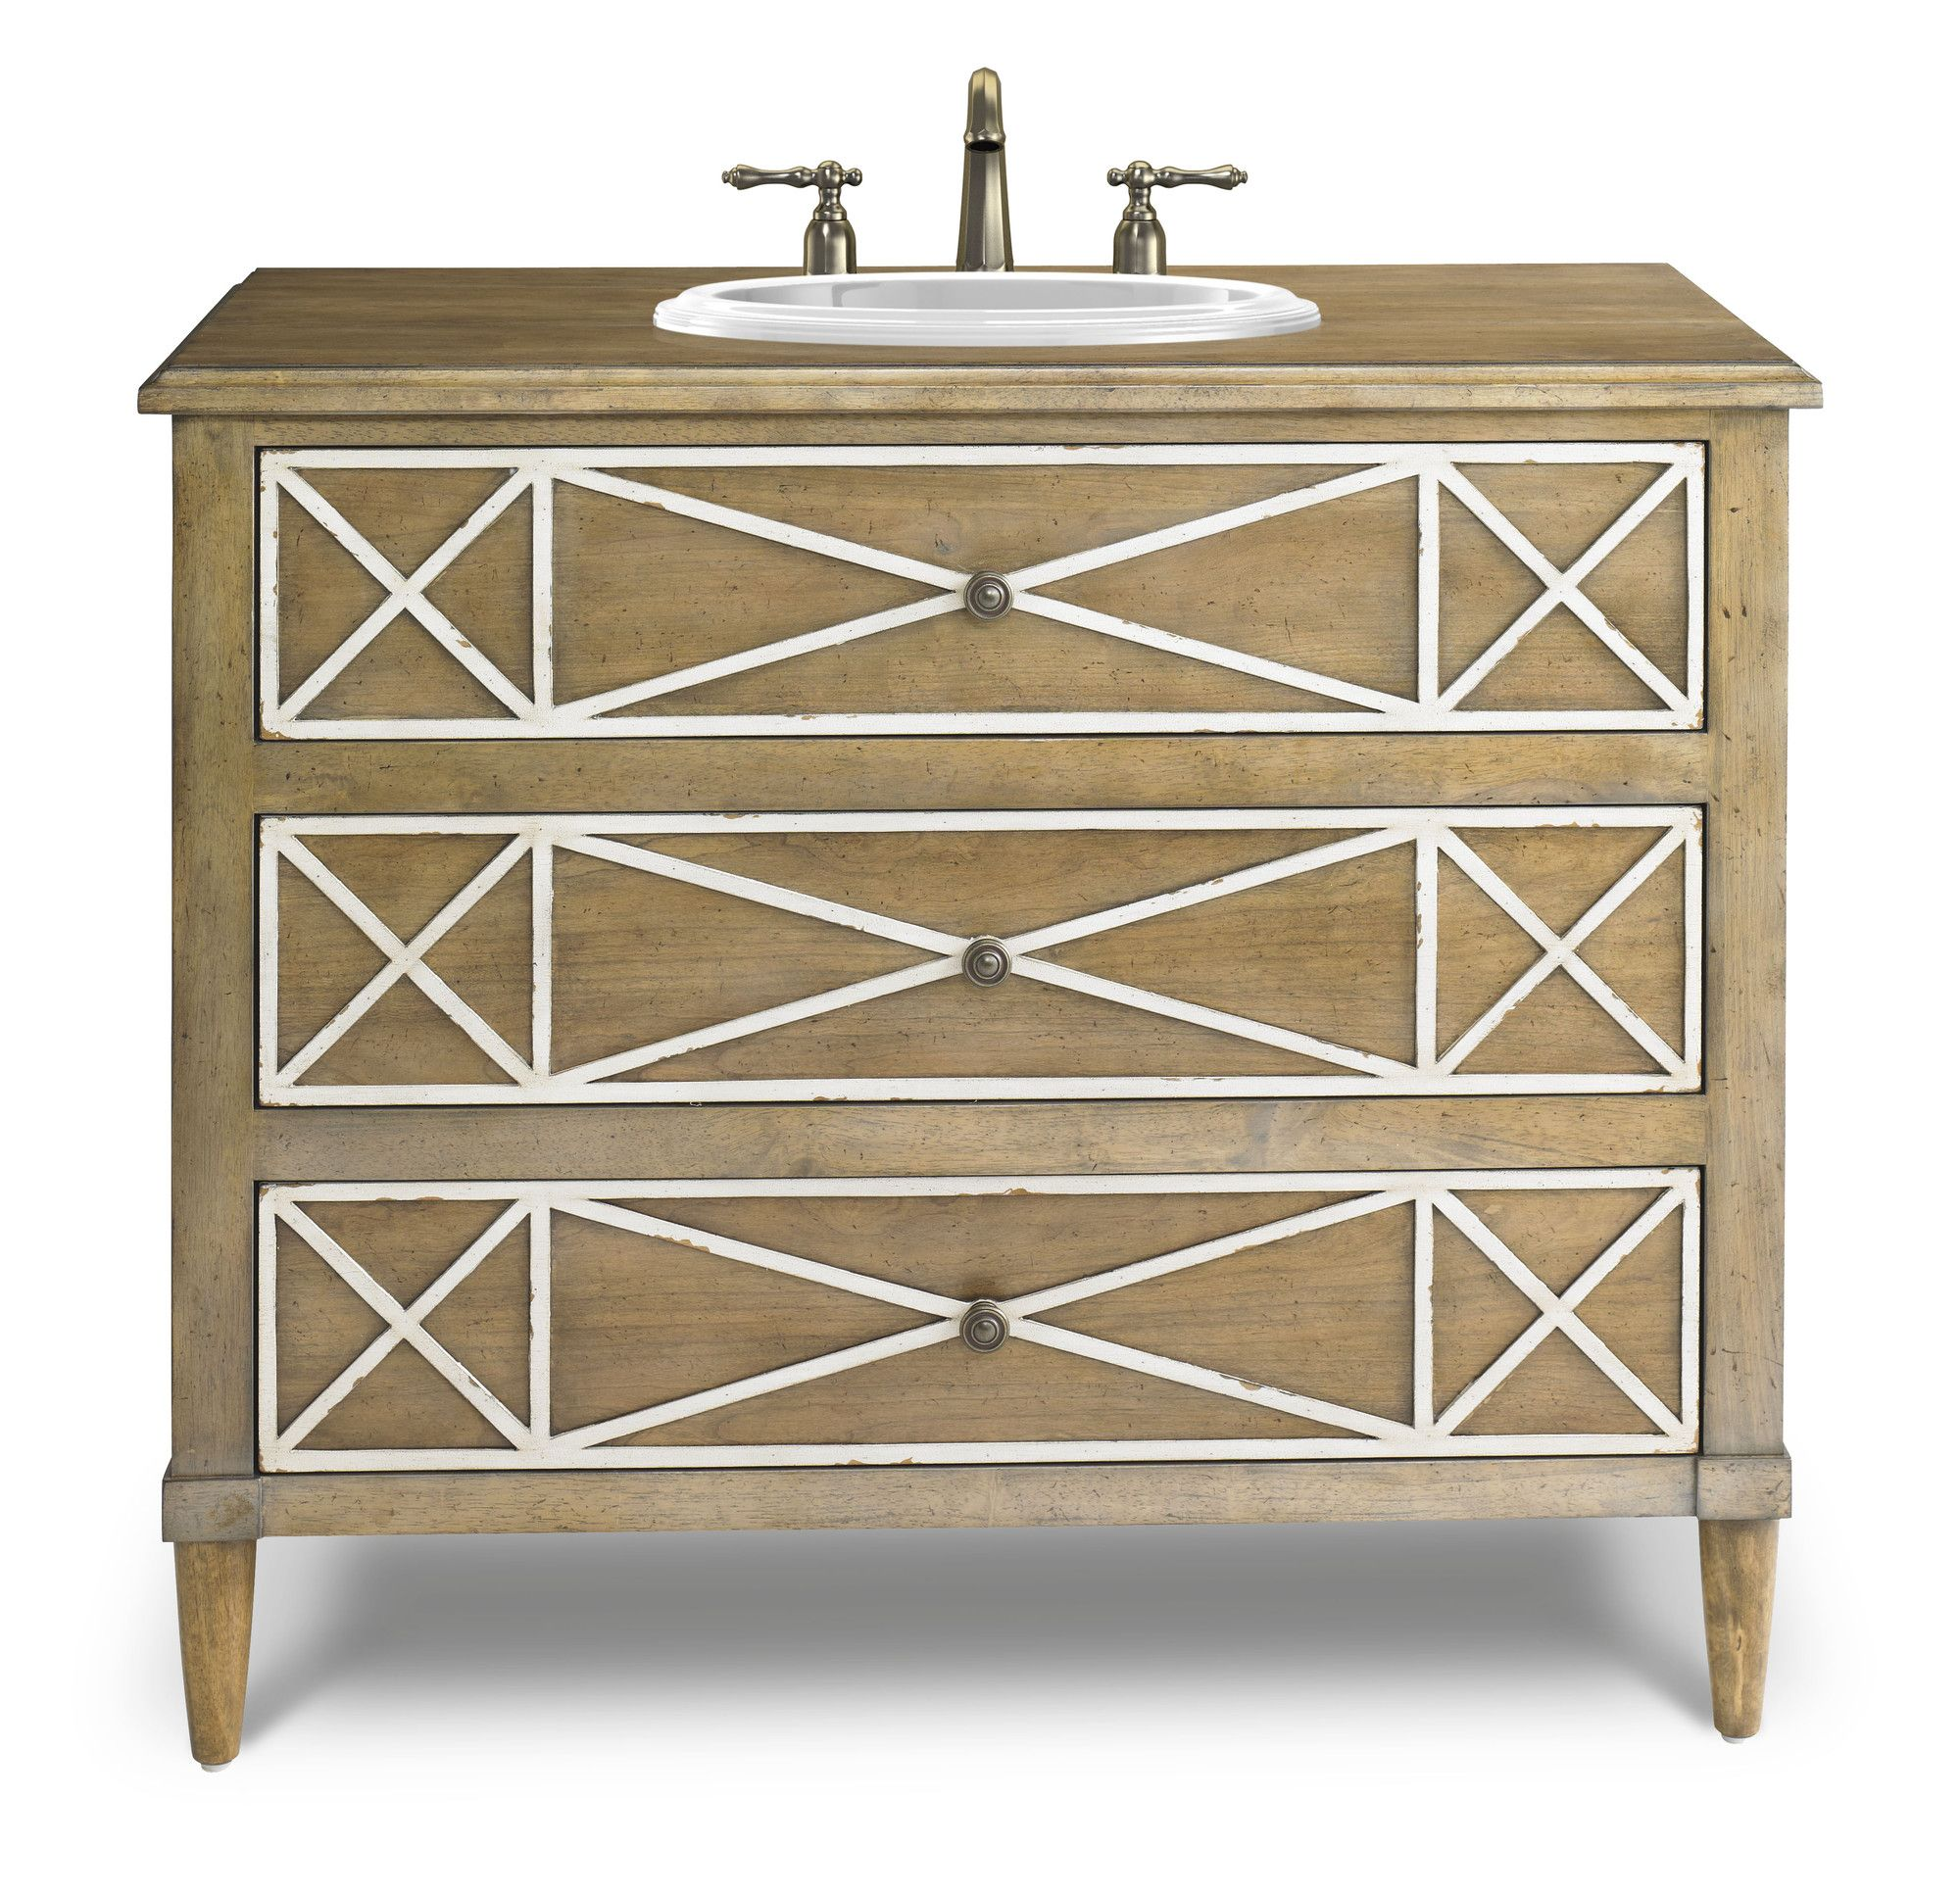 Discount Kitchen Cabinets Seattle: Genevieve 41 Inch Chest Bathroom Vanity By Cole & Co